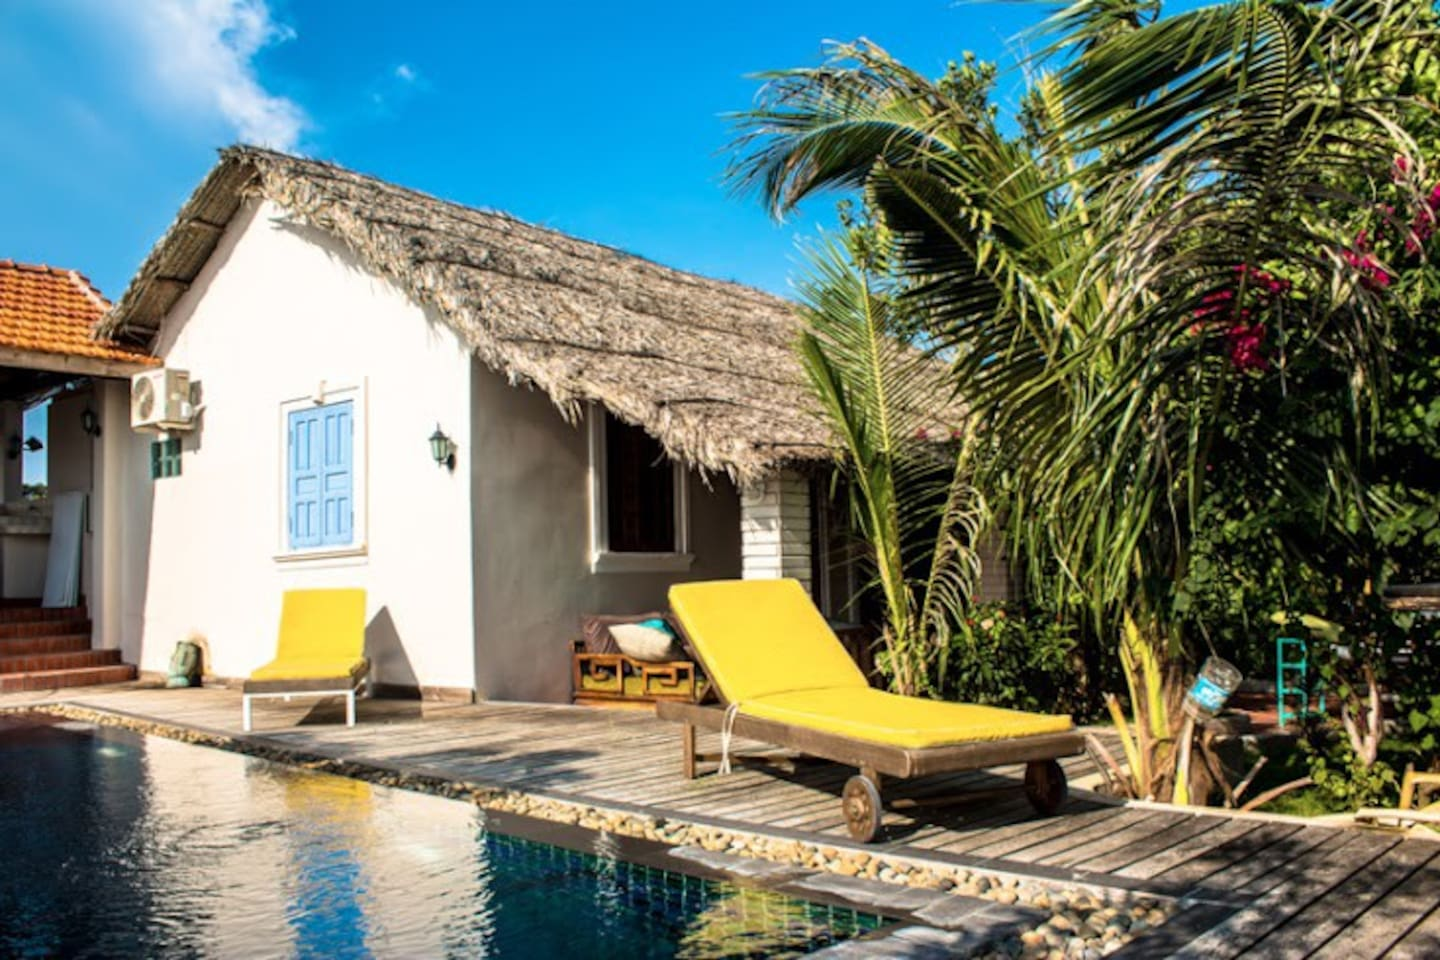 From the private room you have direct access to the shared garden with pool.